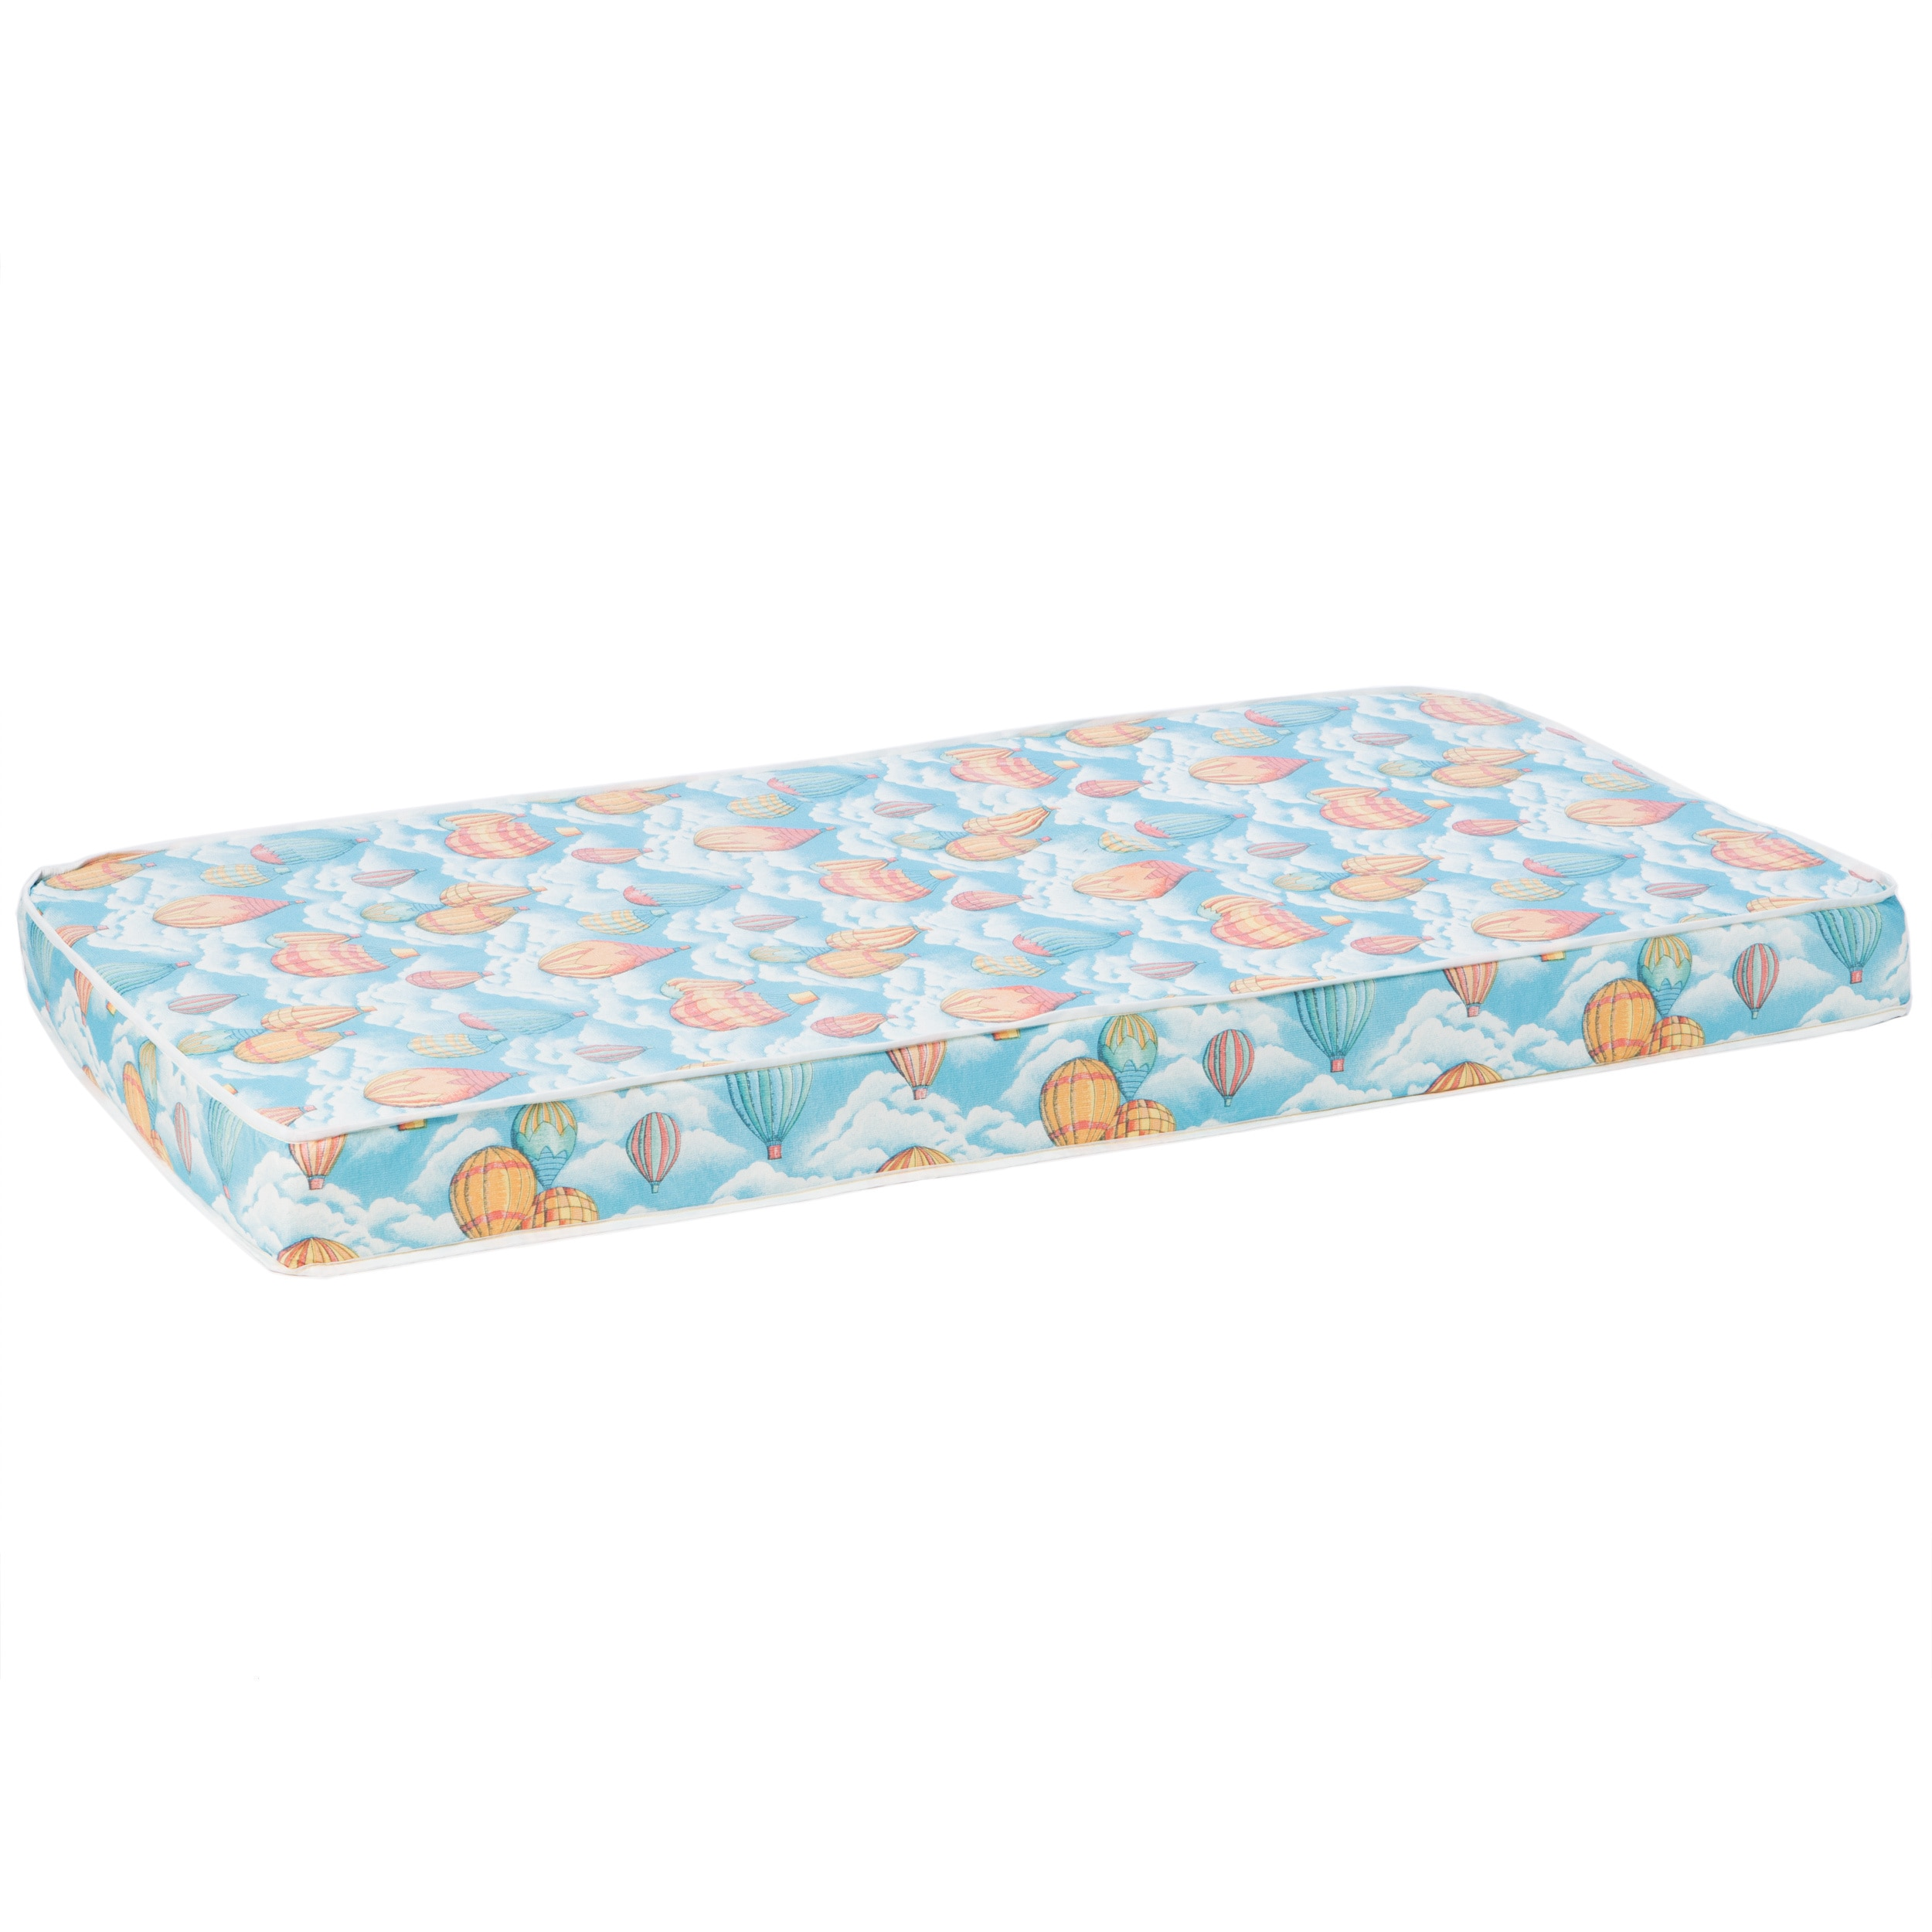 Innerspace Balloon Bunk Bed Twin-size Mattress (Twin Size)